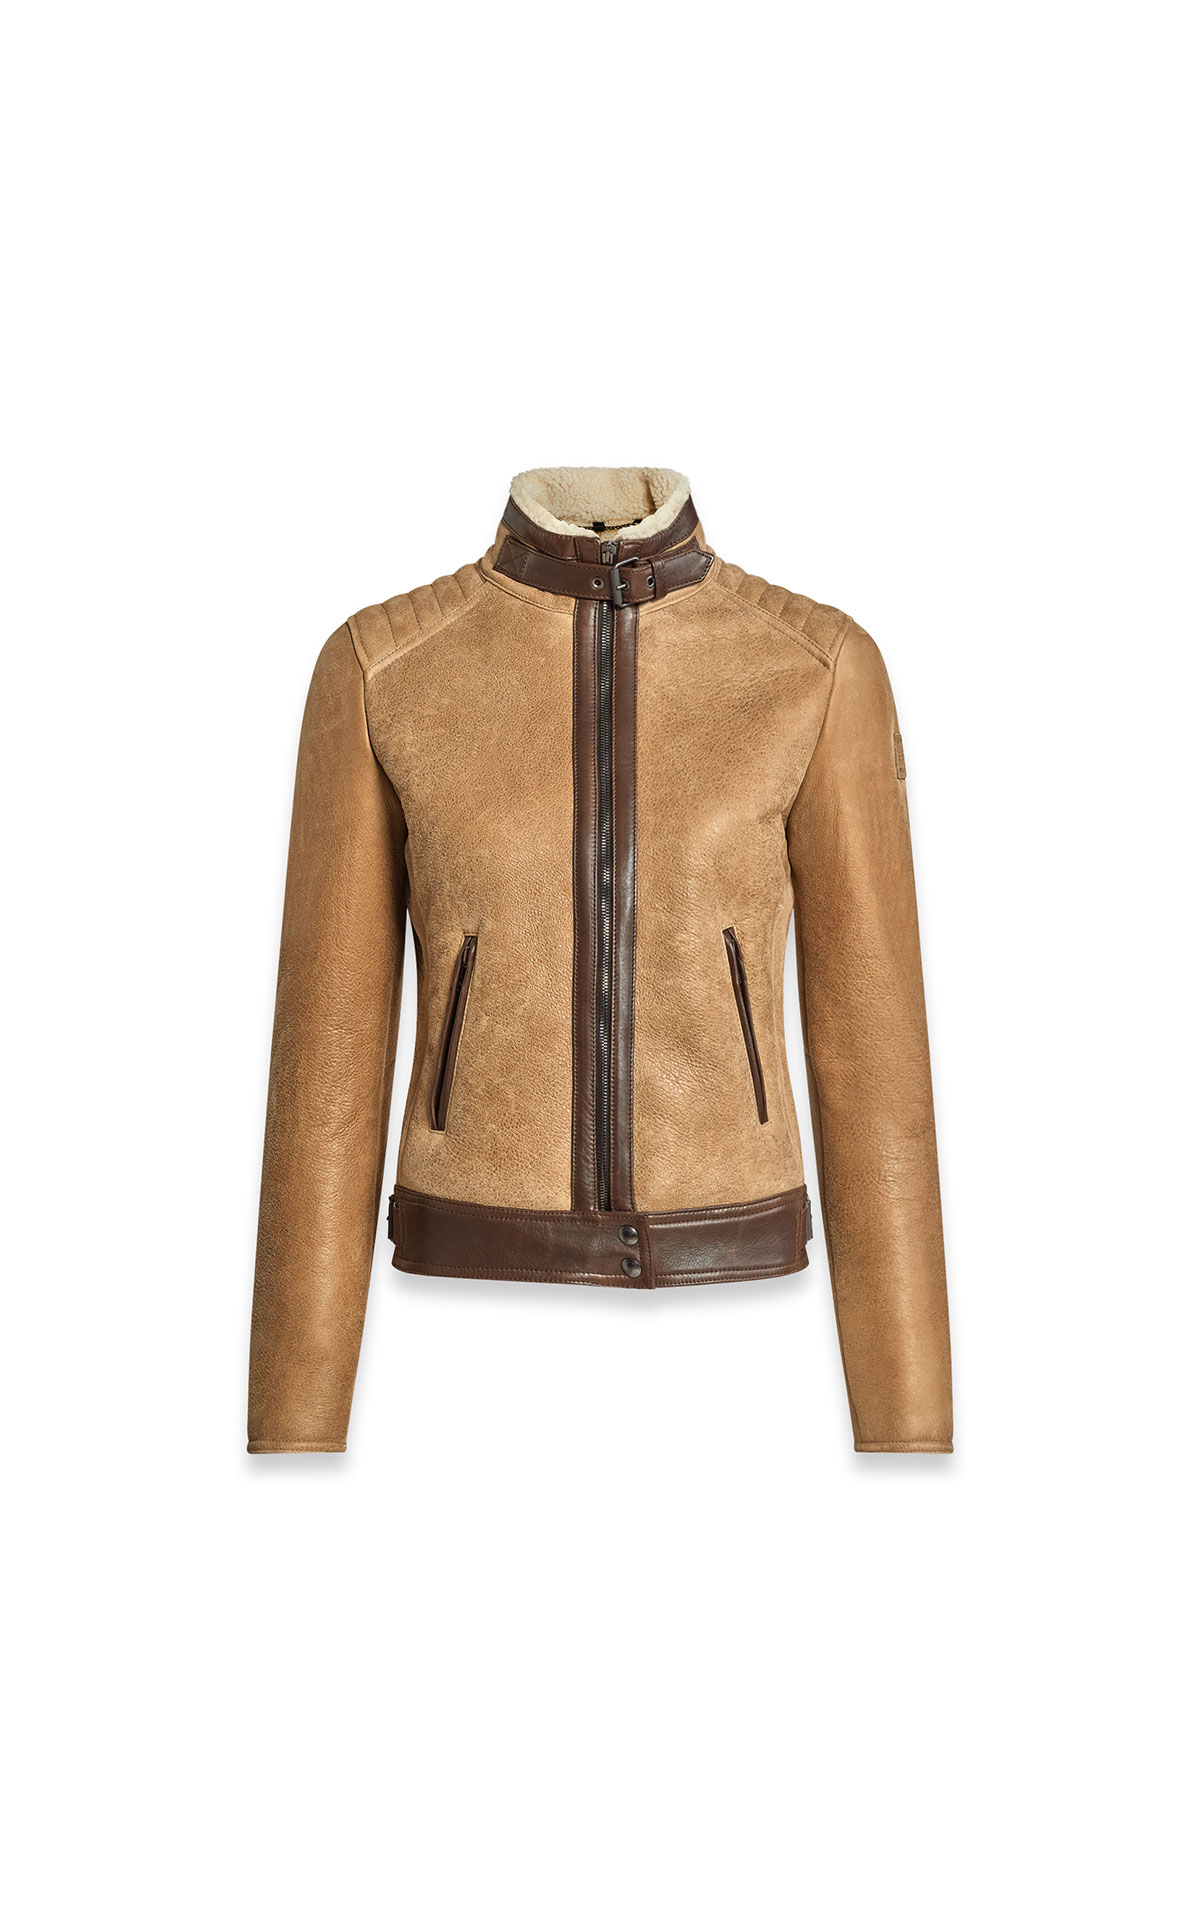 Belstaff Silverlake jacket from Bicester Village